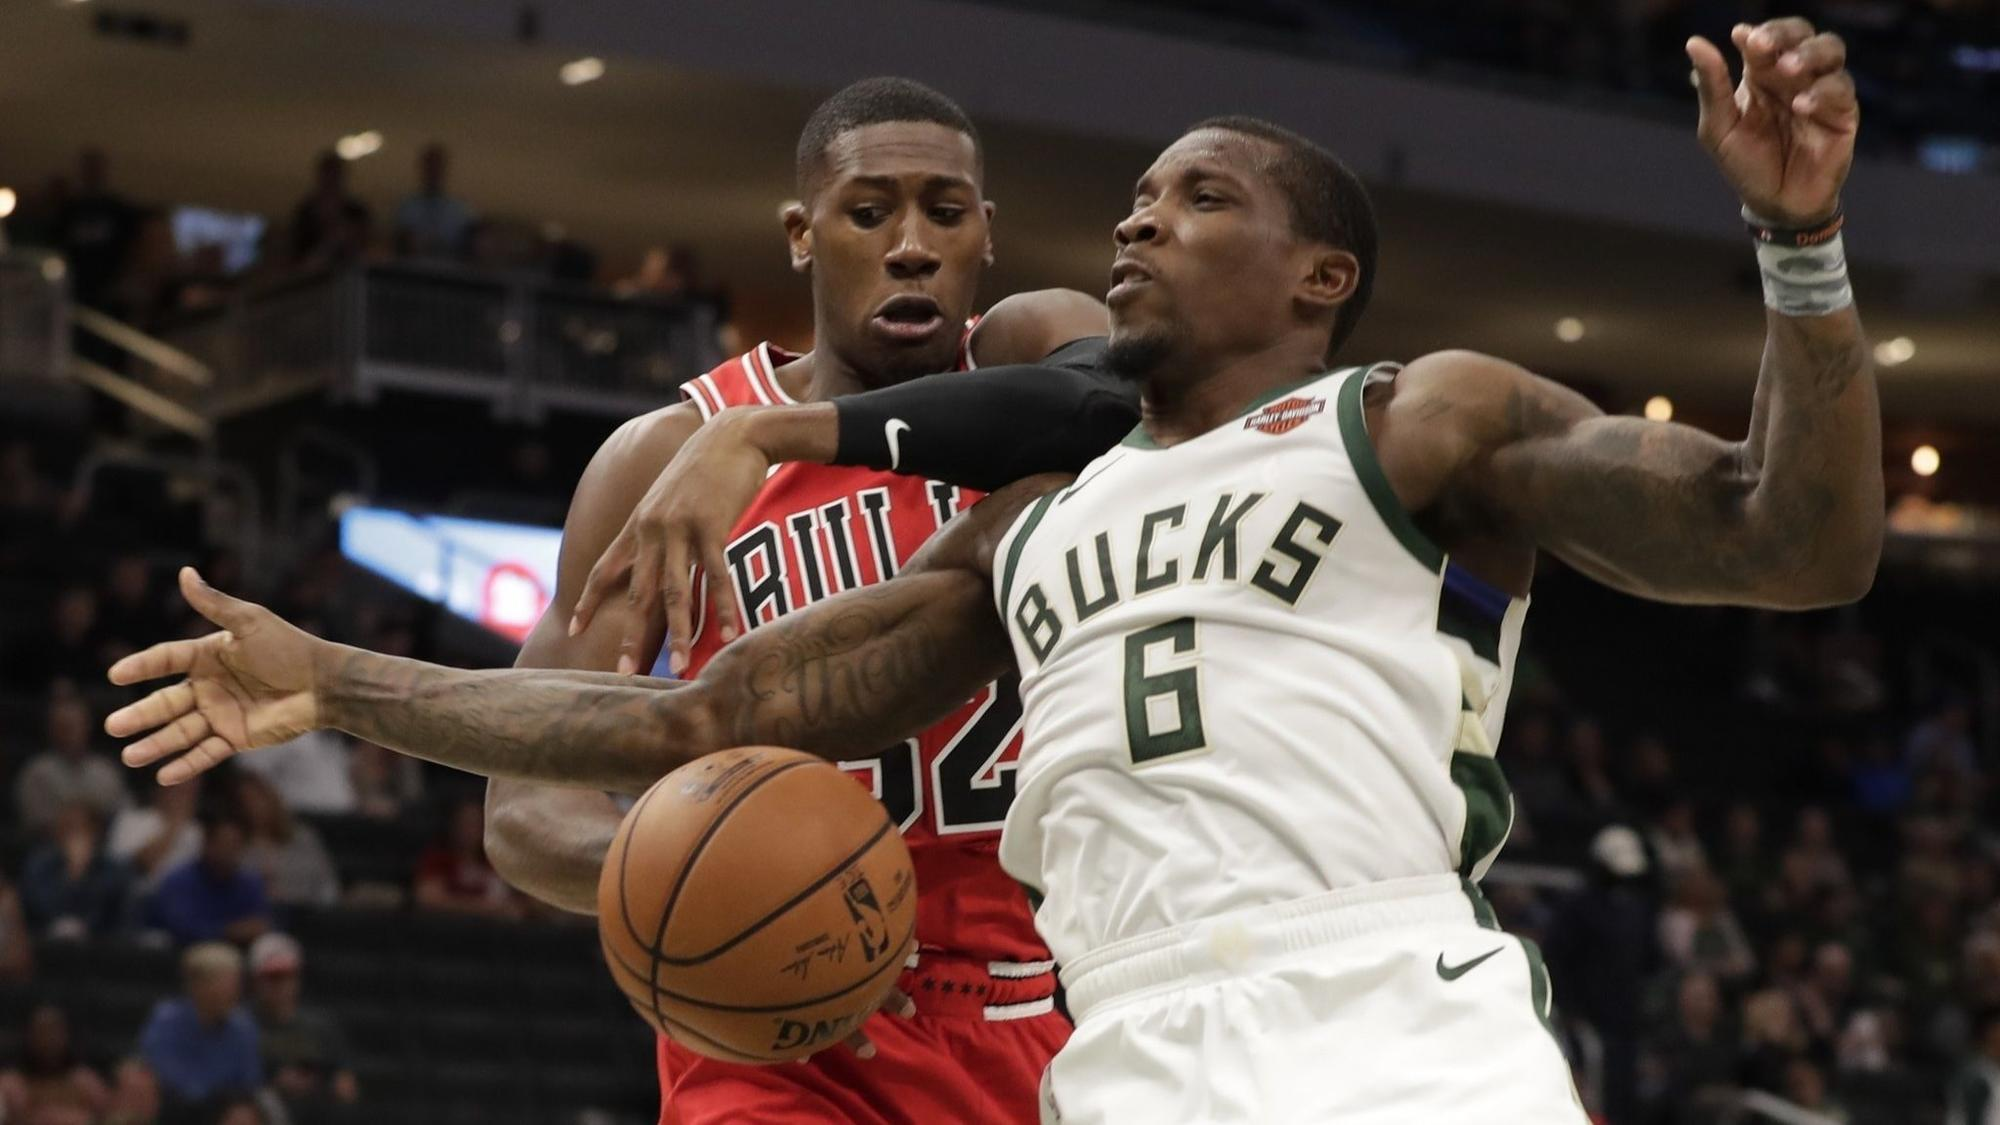 3e73a4b709d0  I believe in my game   Kris Dunn vows to have aggressive offensive mindset  to keep opposing guards honest - Chicago Tribune